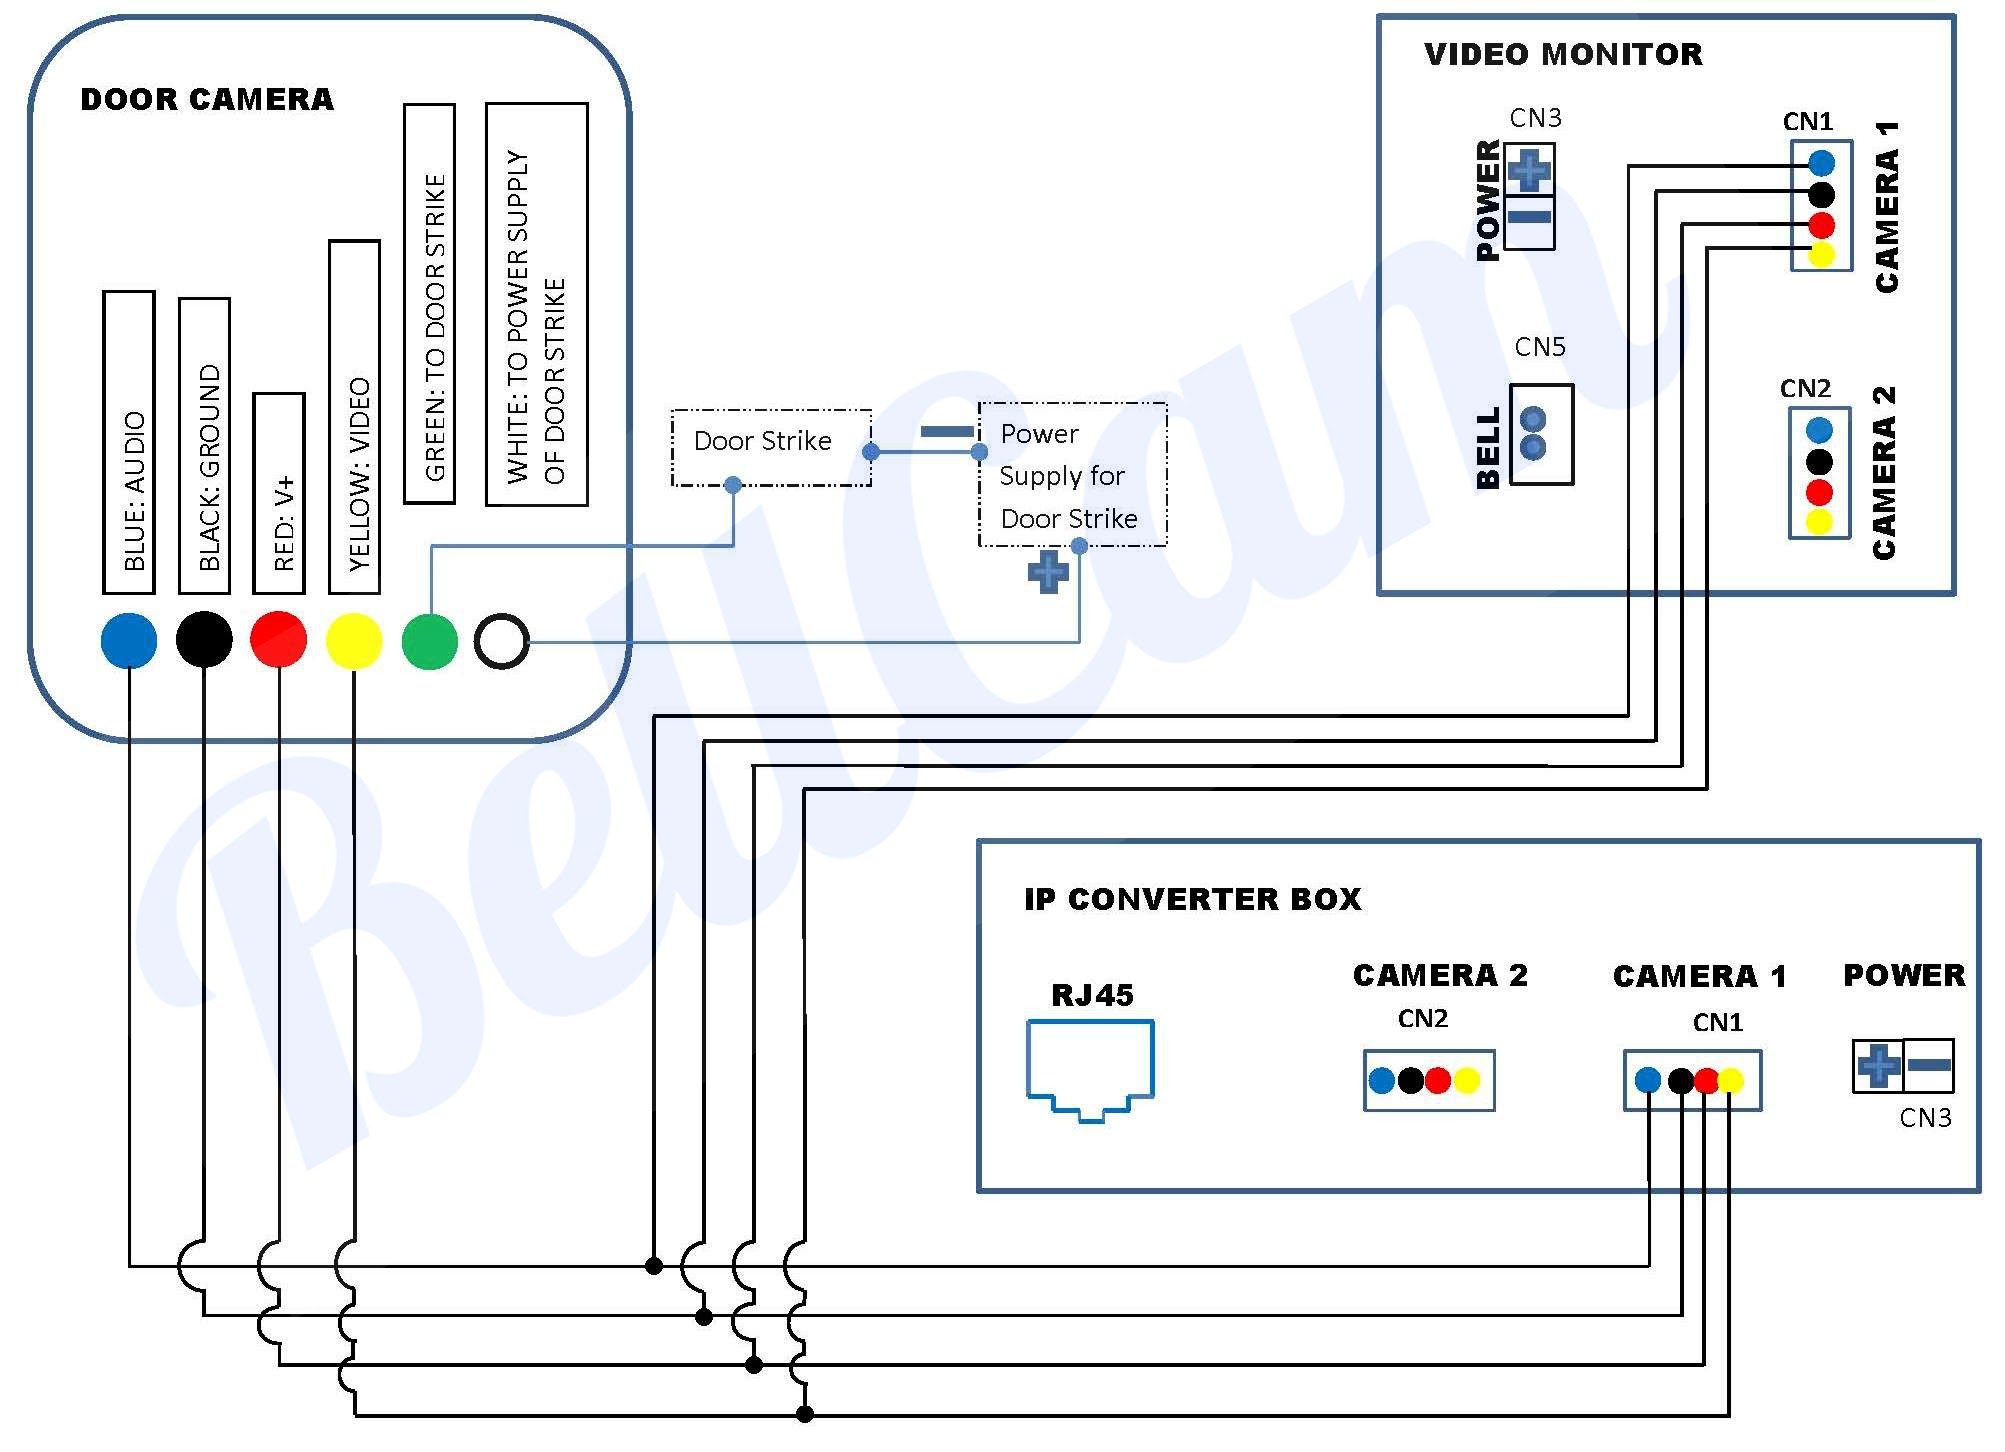 [ZHKZ_3066]  DIAGRAM] Panasonic Intercom Wiring Diagram FULL Version HD Quality Wiring  Diagram - DIAGRAMGAME.GLAUCOMANET.IT | Intercom Wiring Diagrams |  | Glaucomanet.it